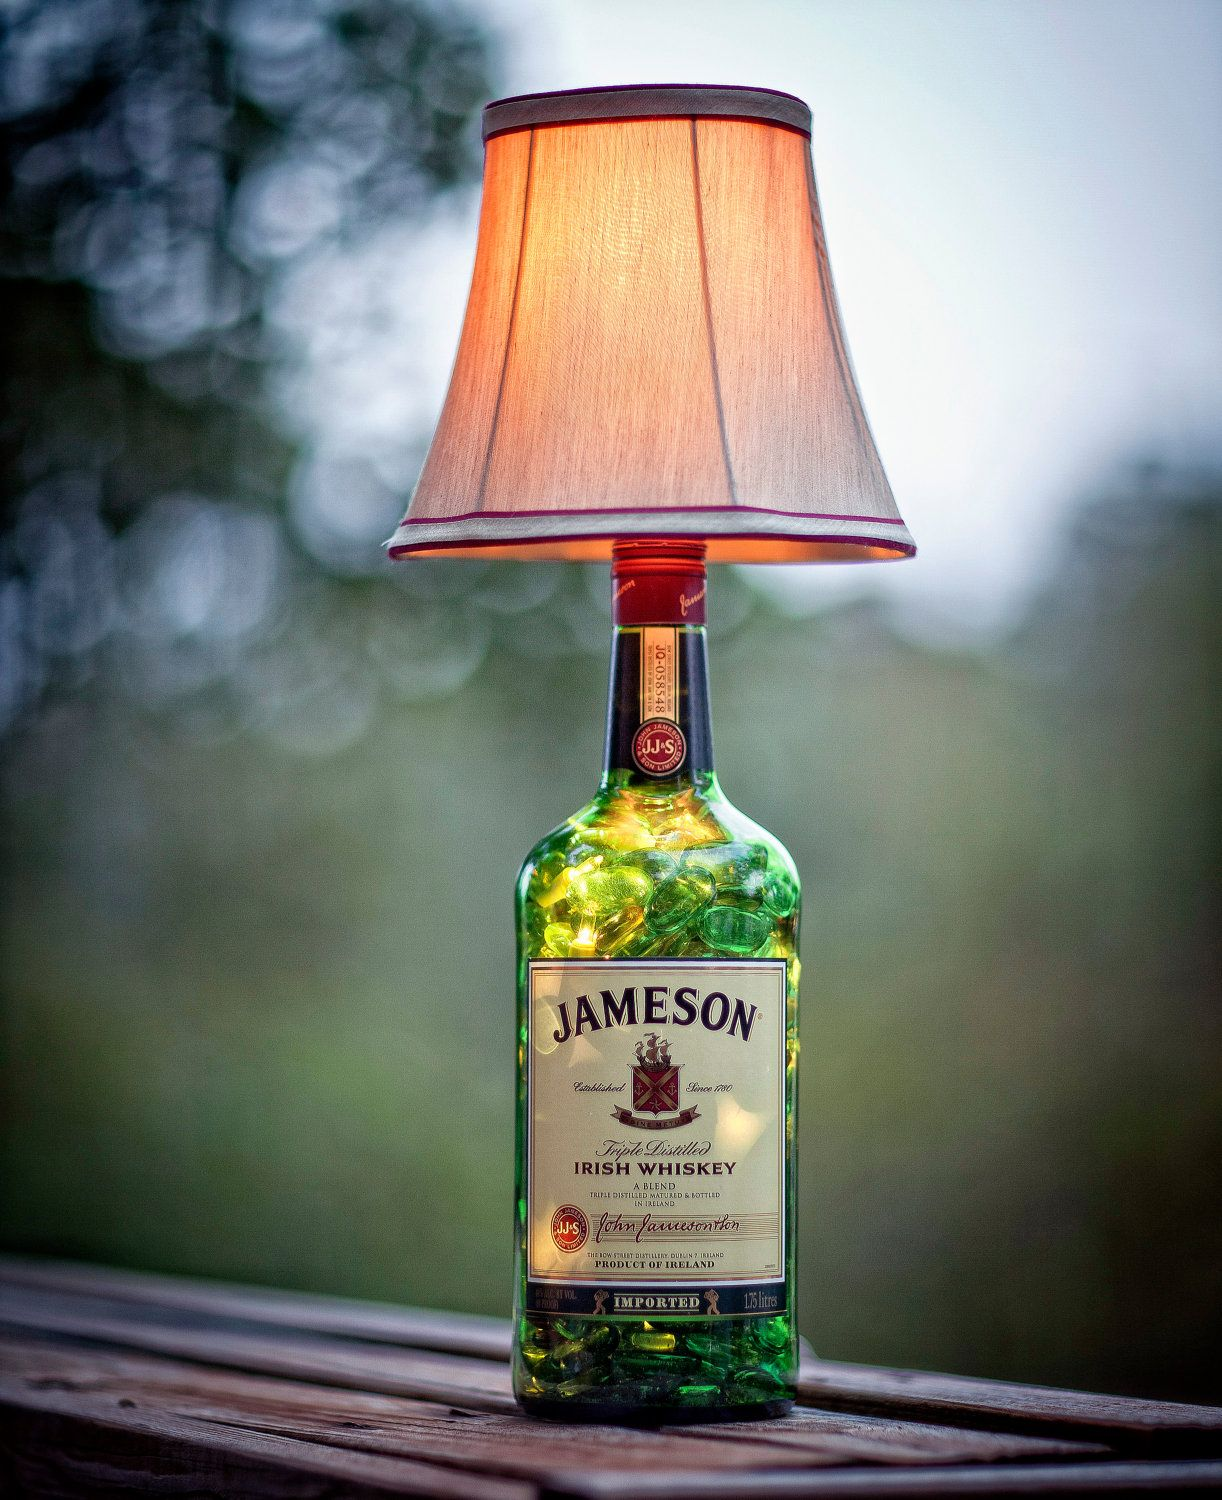 Why throw a bottle away when you can create works of art out of it . . . or a lamp